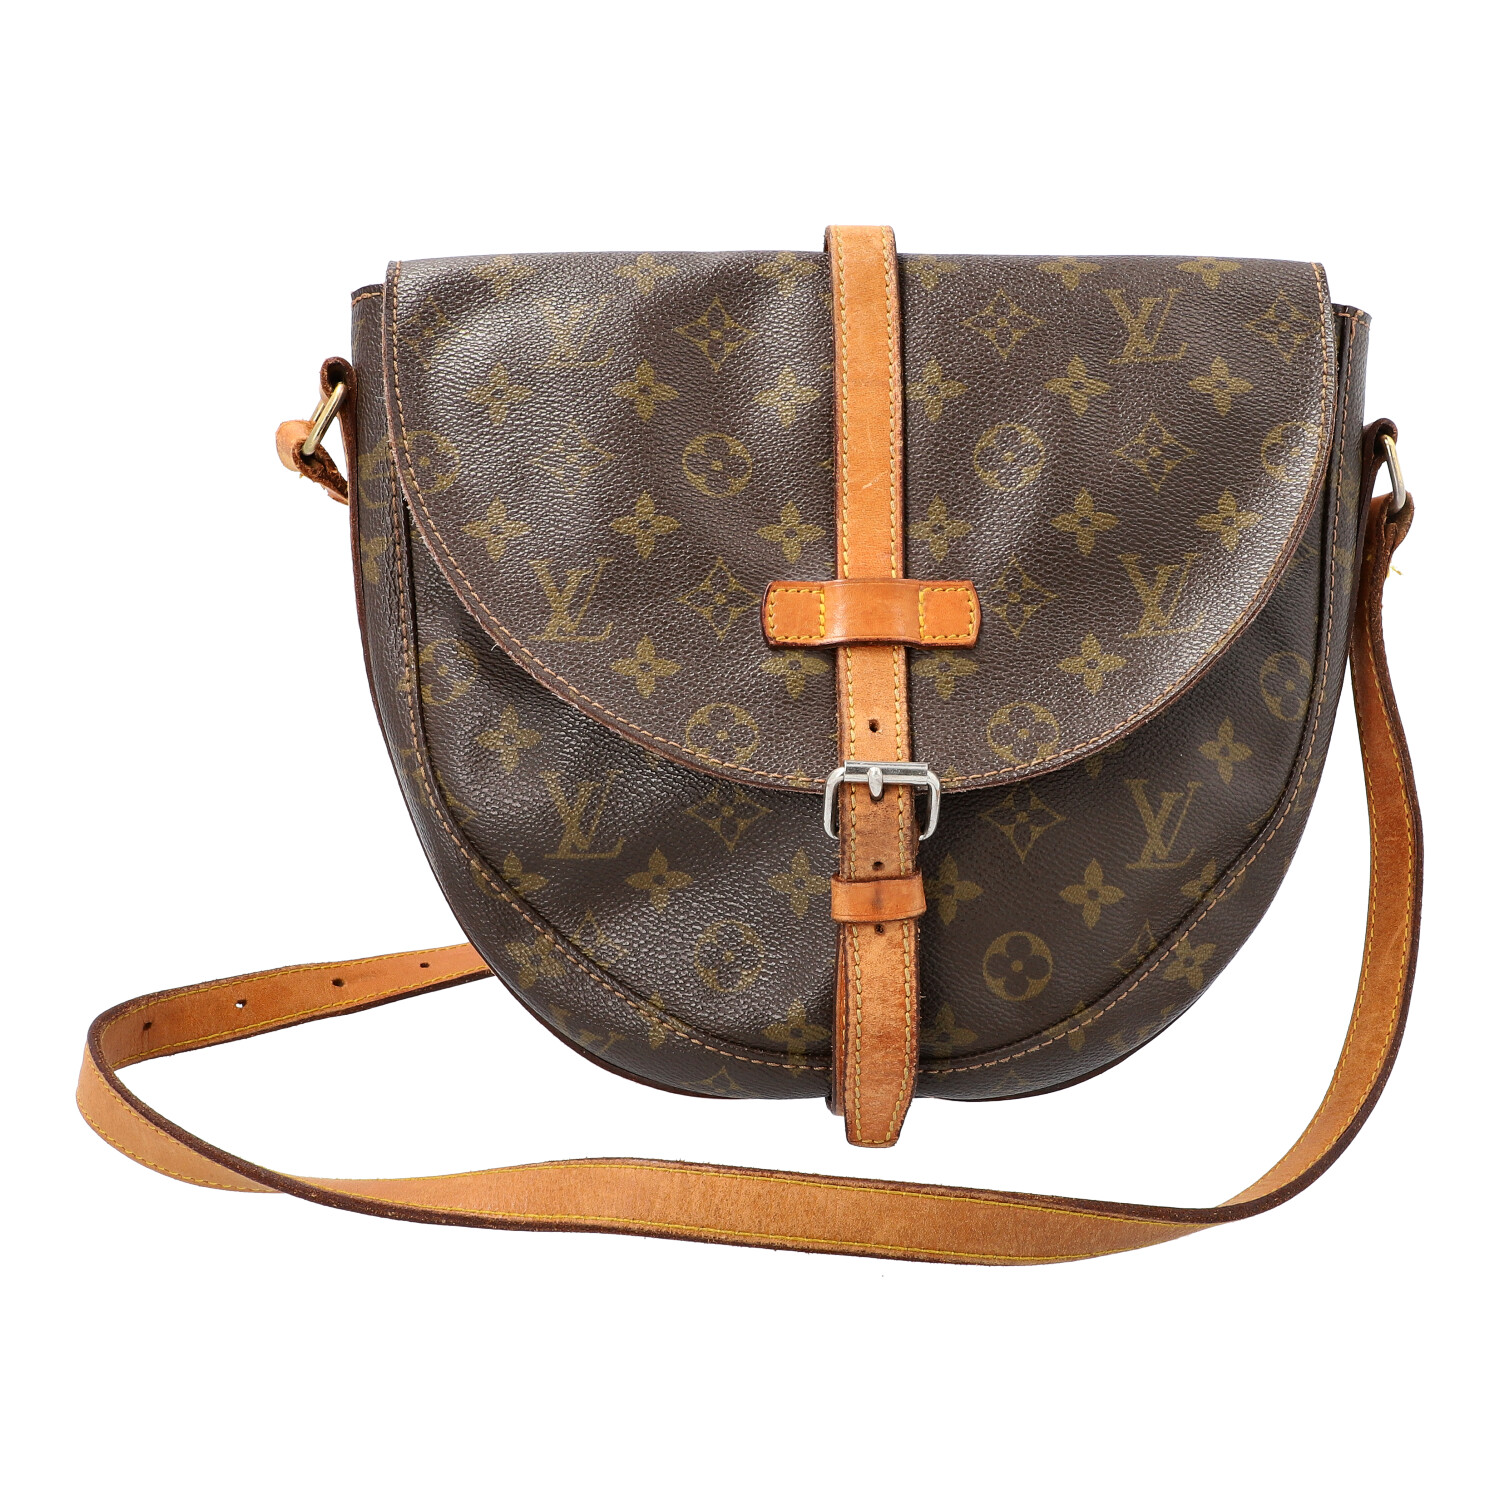 "LOUIS VUITTON VINTAGE Umhängetasche ""CHANTILLY GM"".Monogram Canvas Serie, Rindslederdetails mit"